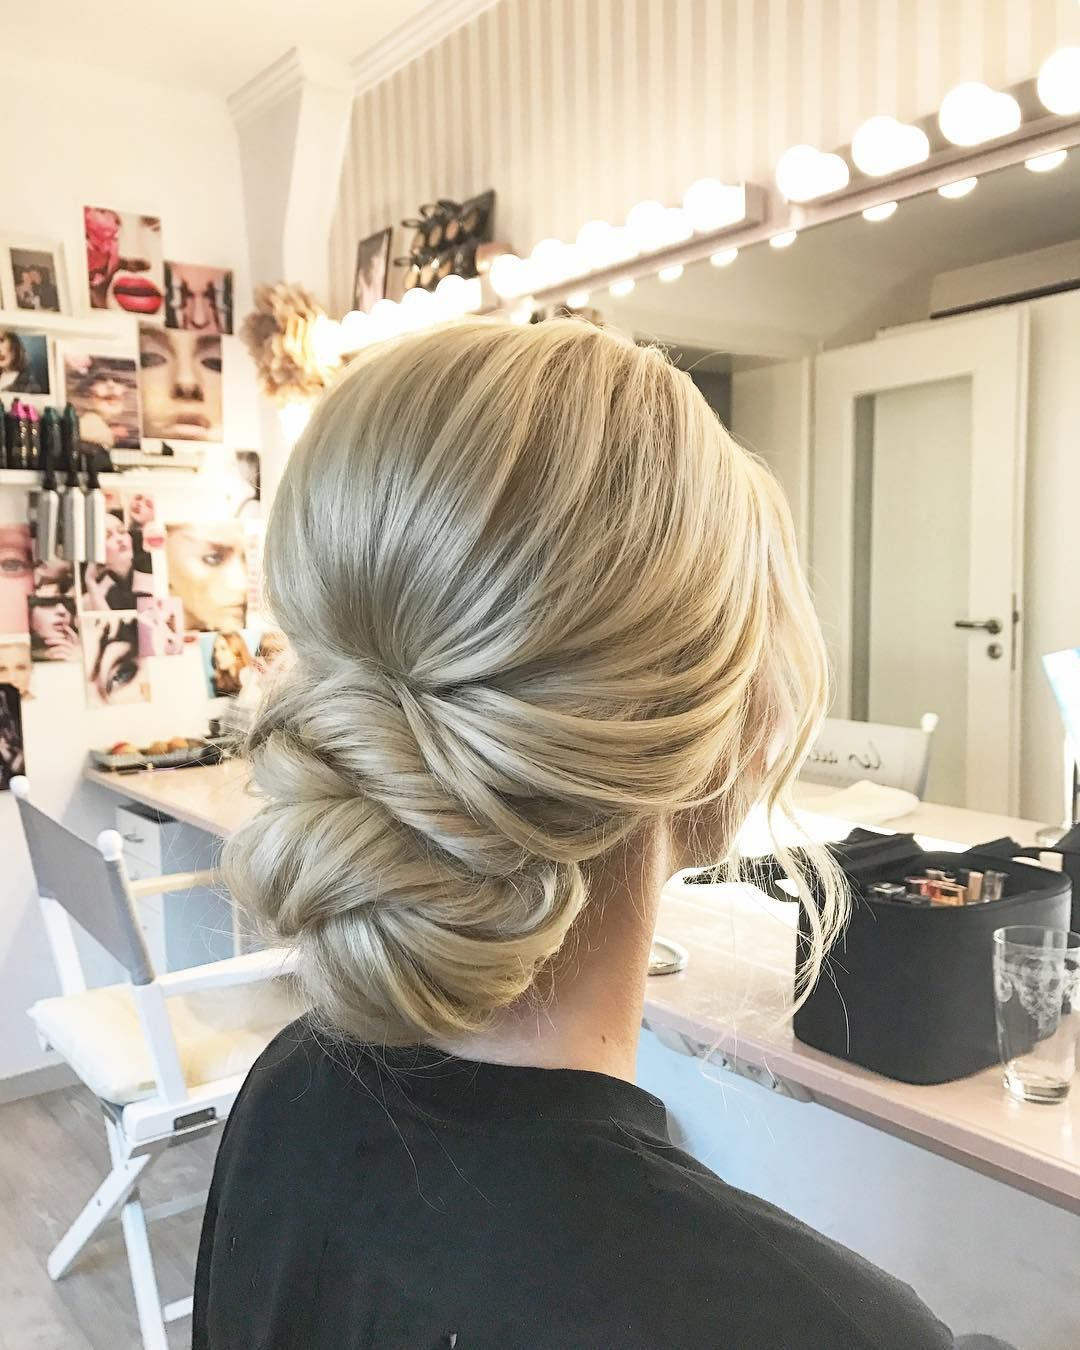 unique updo hairstyle ,messy updo hairstyle ,swept back bridal hairstyle ,updo hairstyles ,wedding hairstyles #weddinghair #hairstyles #updo